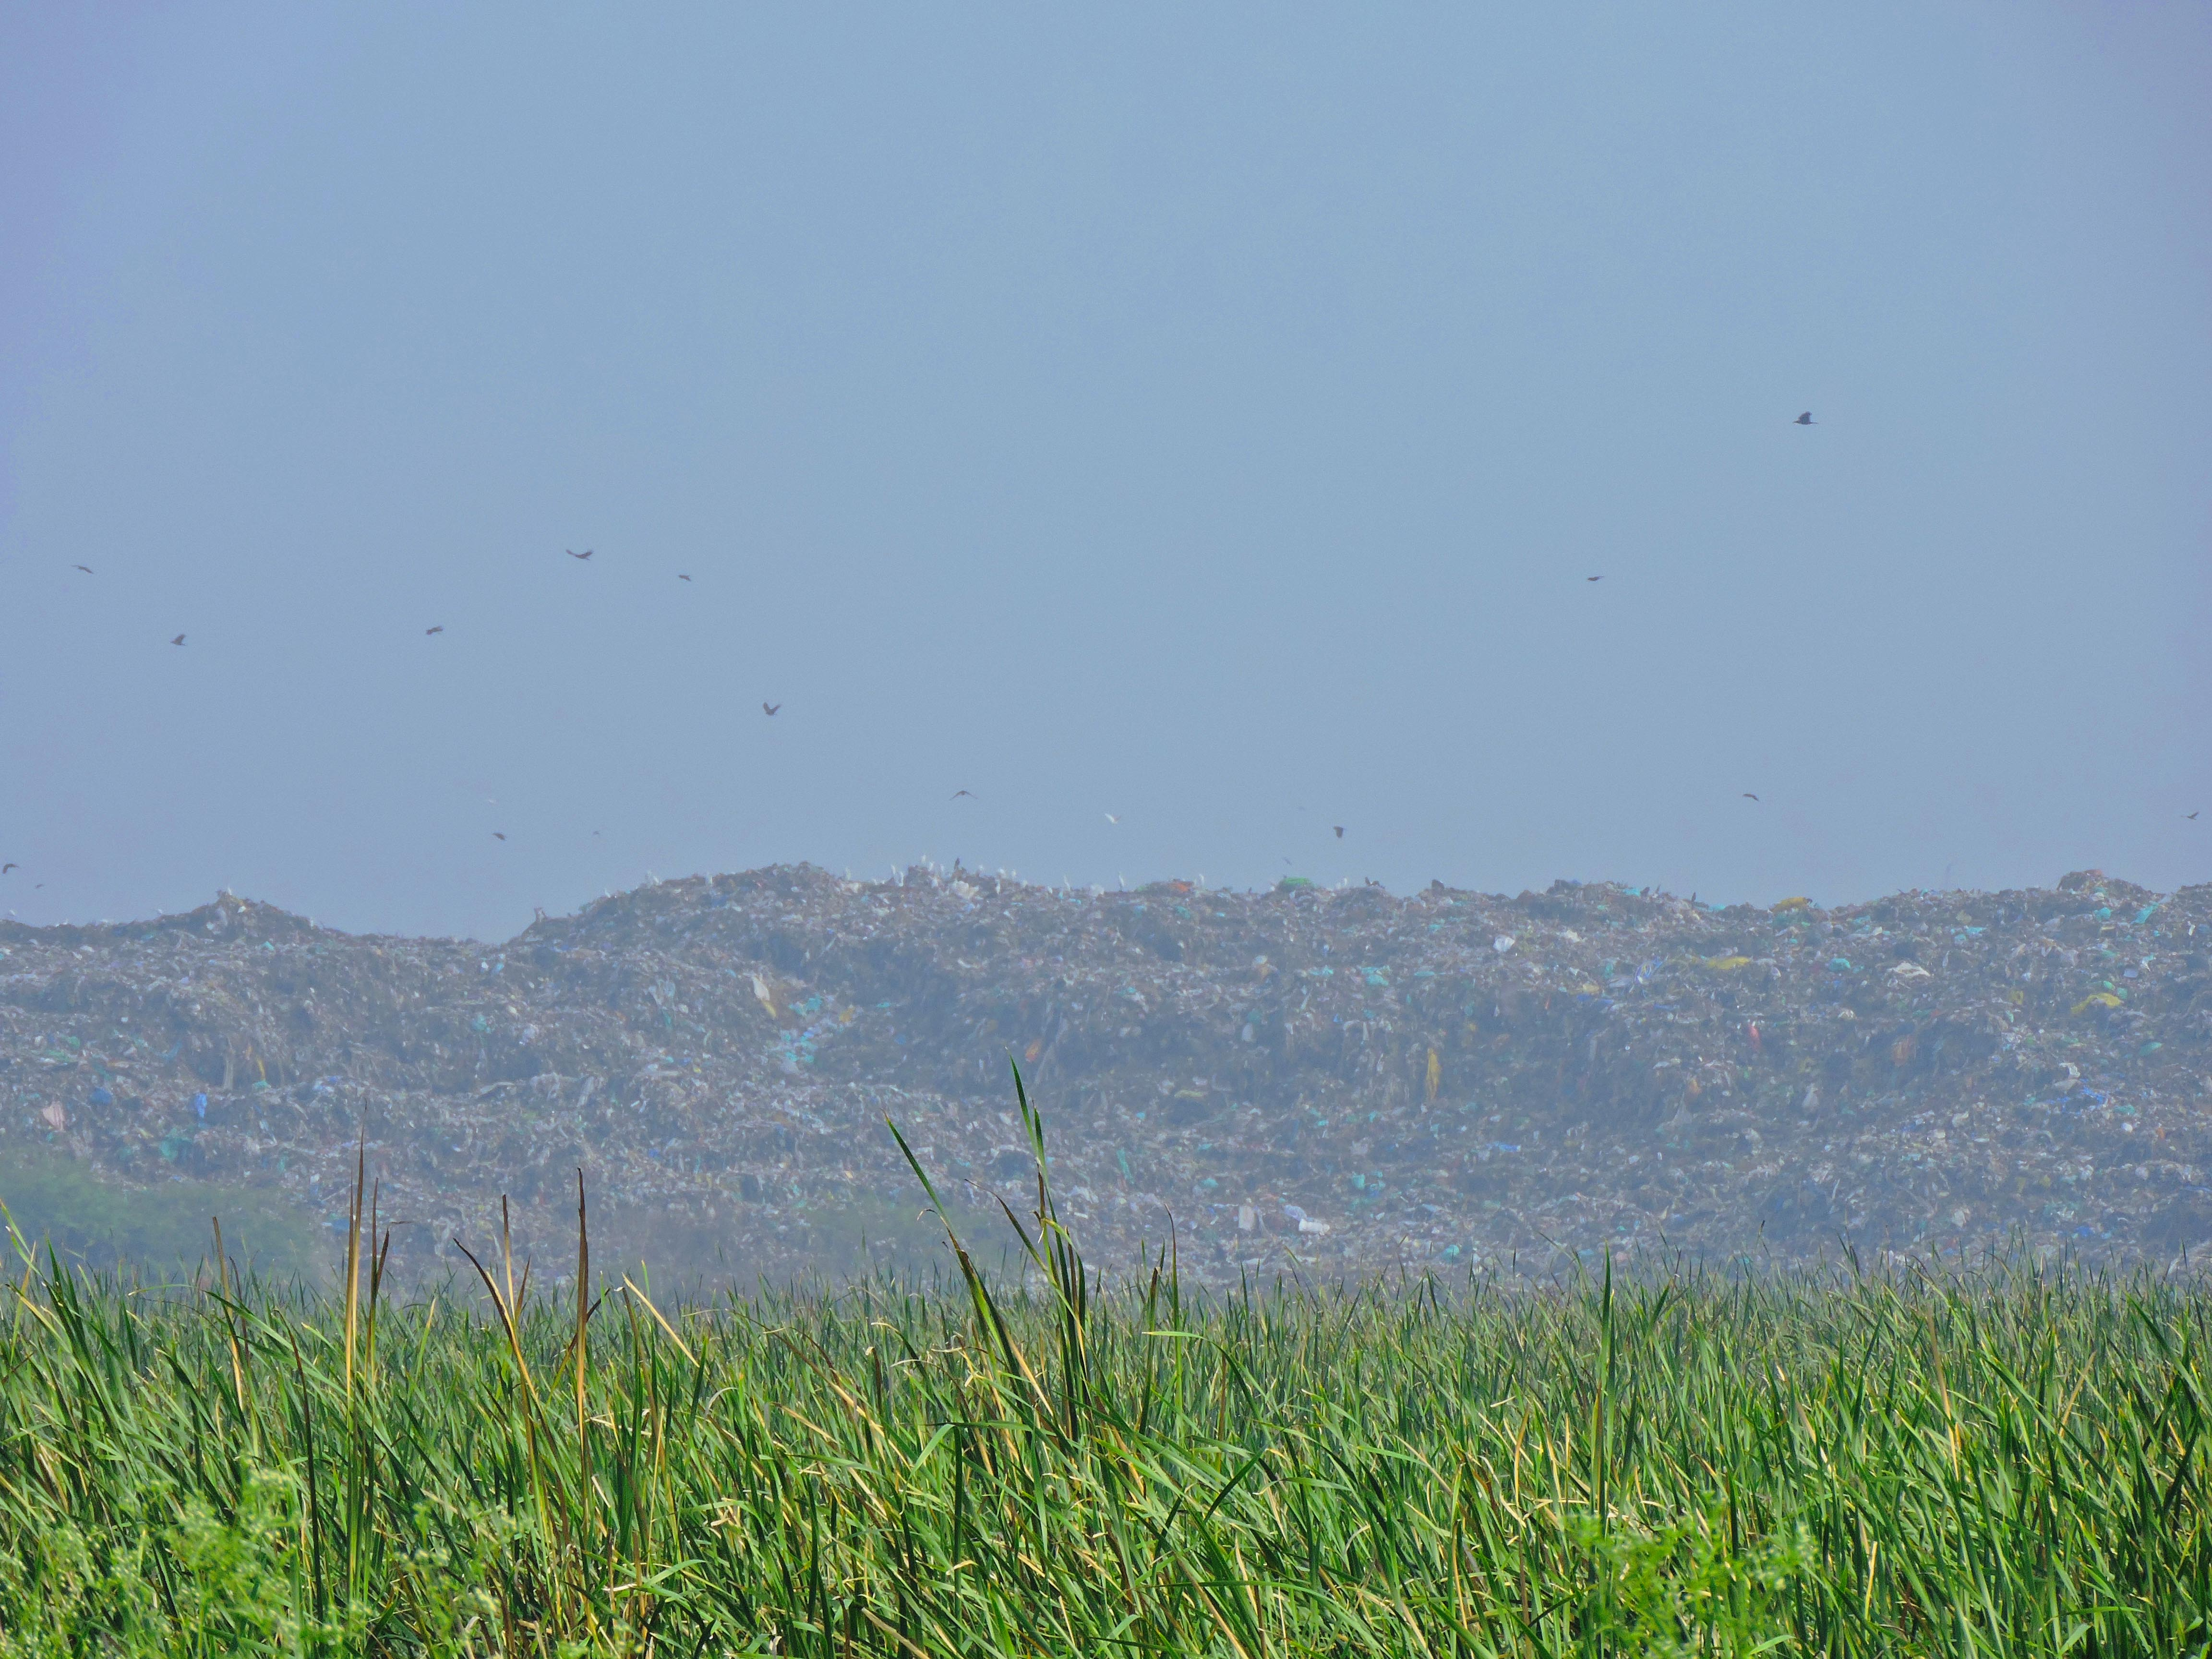 The long arm of Perungudi dump yard extends onto the marshland, as seen from 200 Feet Radial Road. Photo: Divya Candade